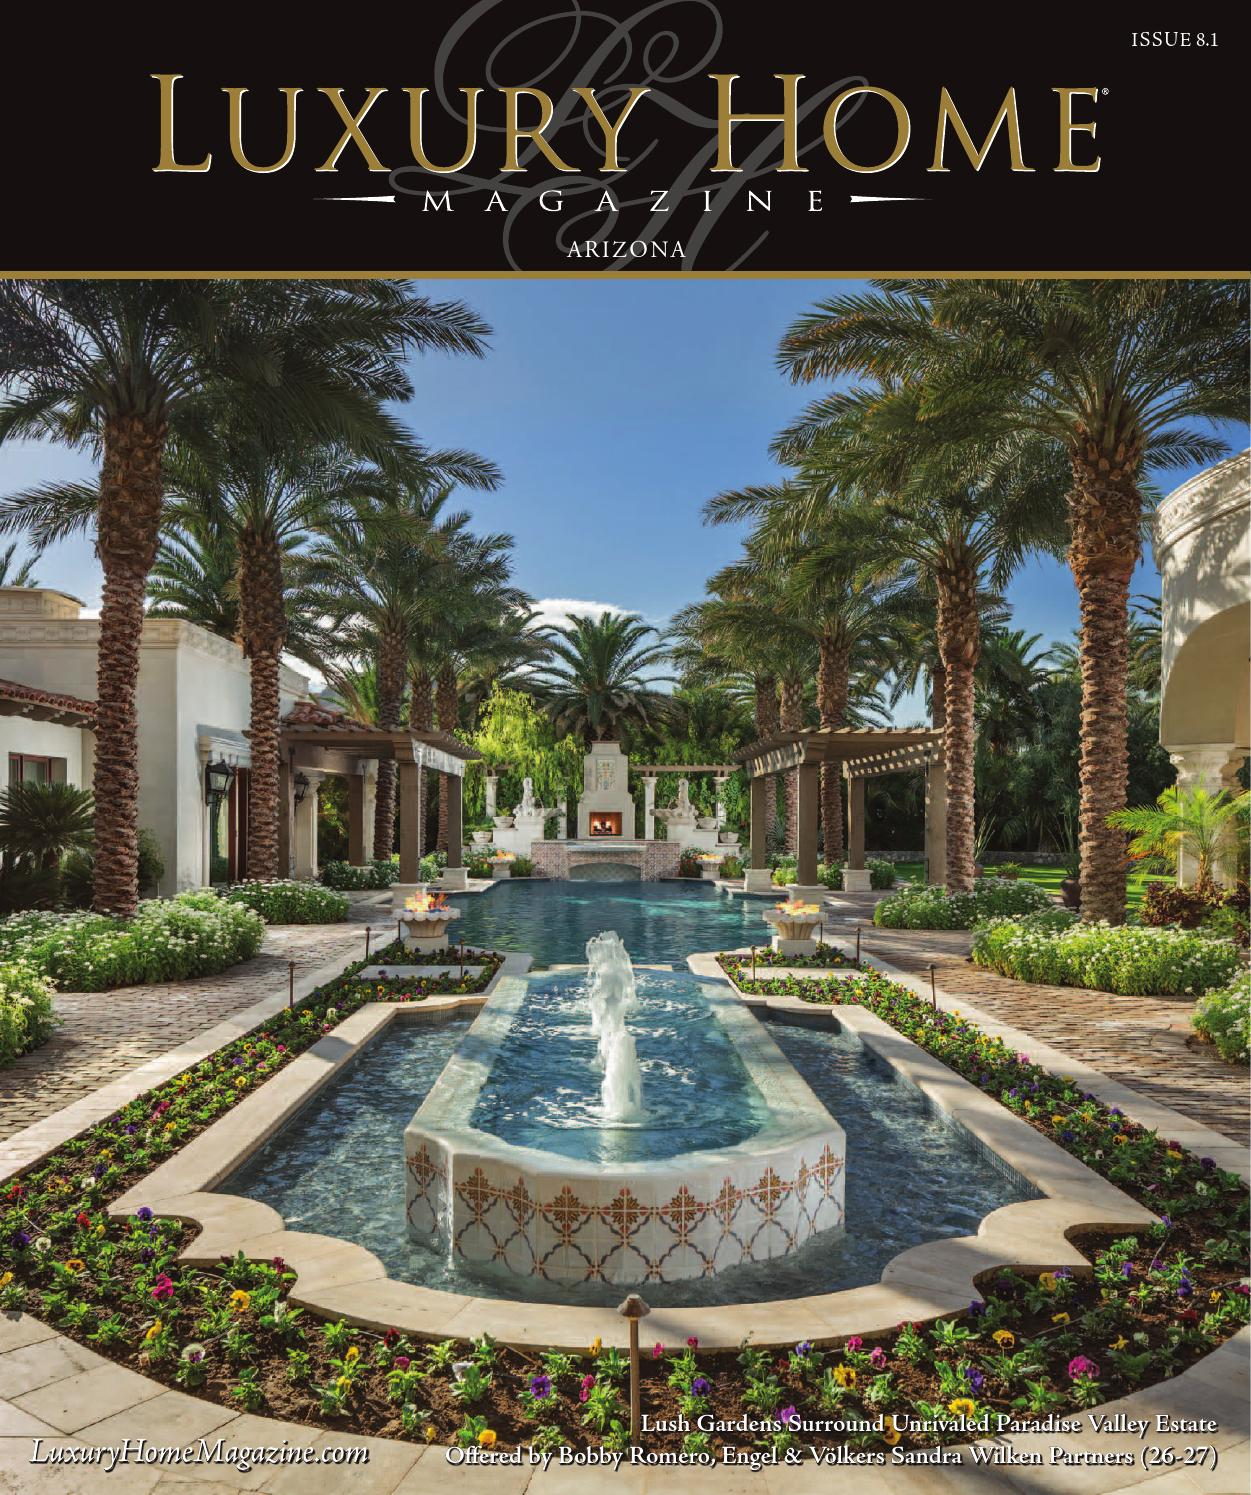 Luxury Homes On The Water: Luxury Home Magazine Arizona Issue 8.1 By Luxury Home